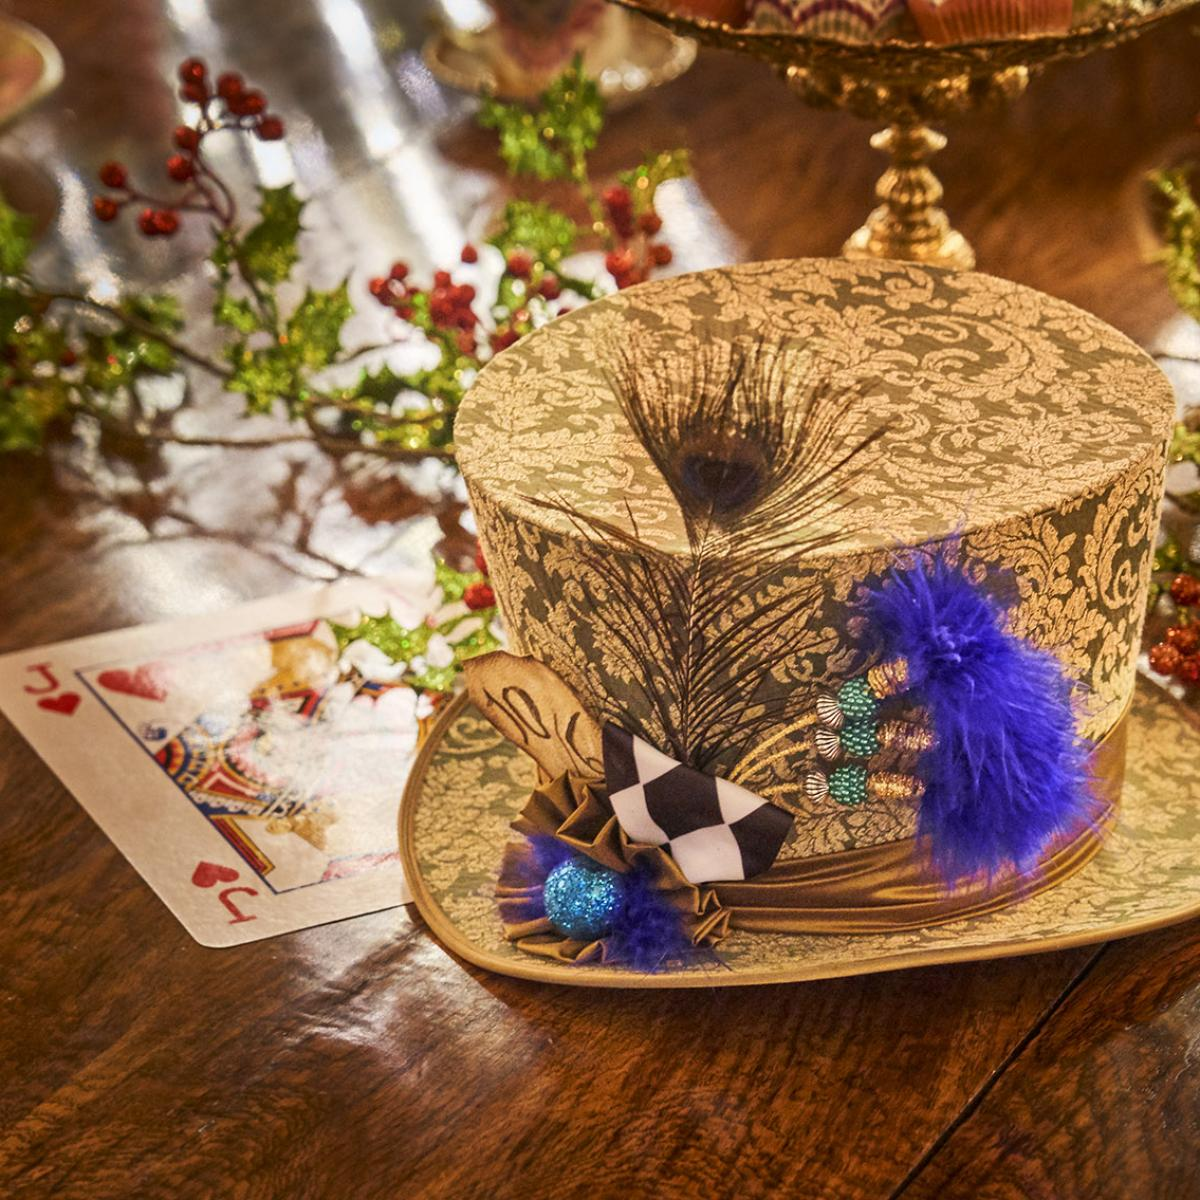 Alice in the Palace - A Christmas experience at Blenheim Palace